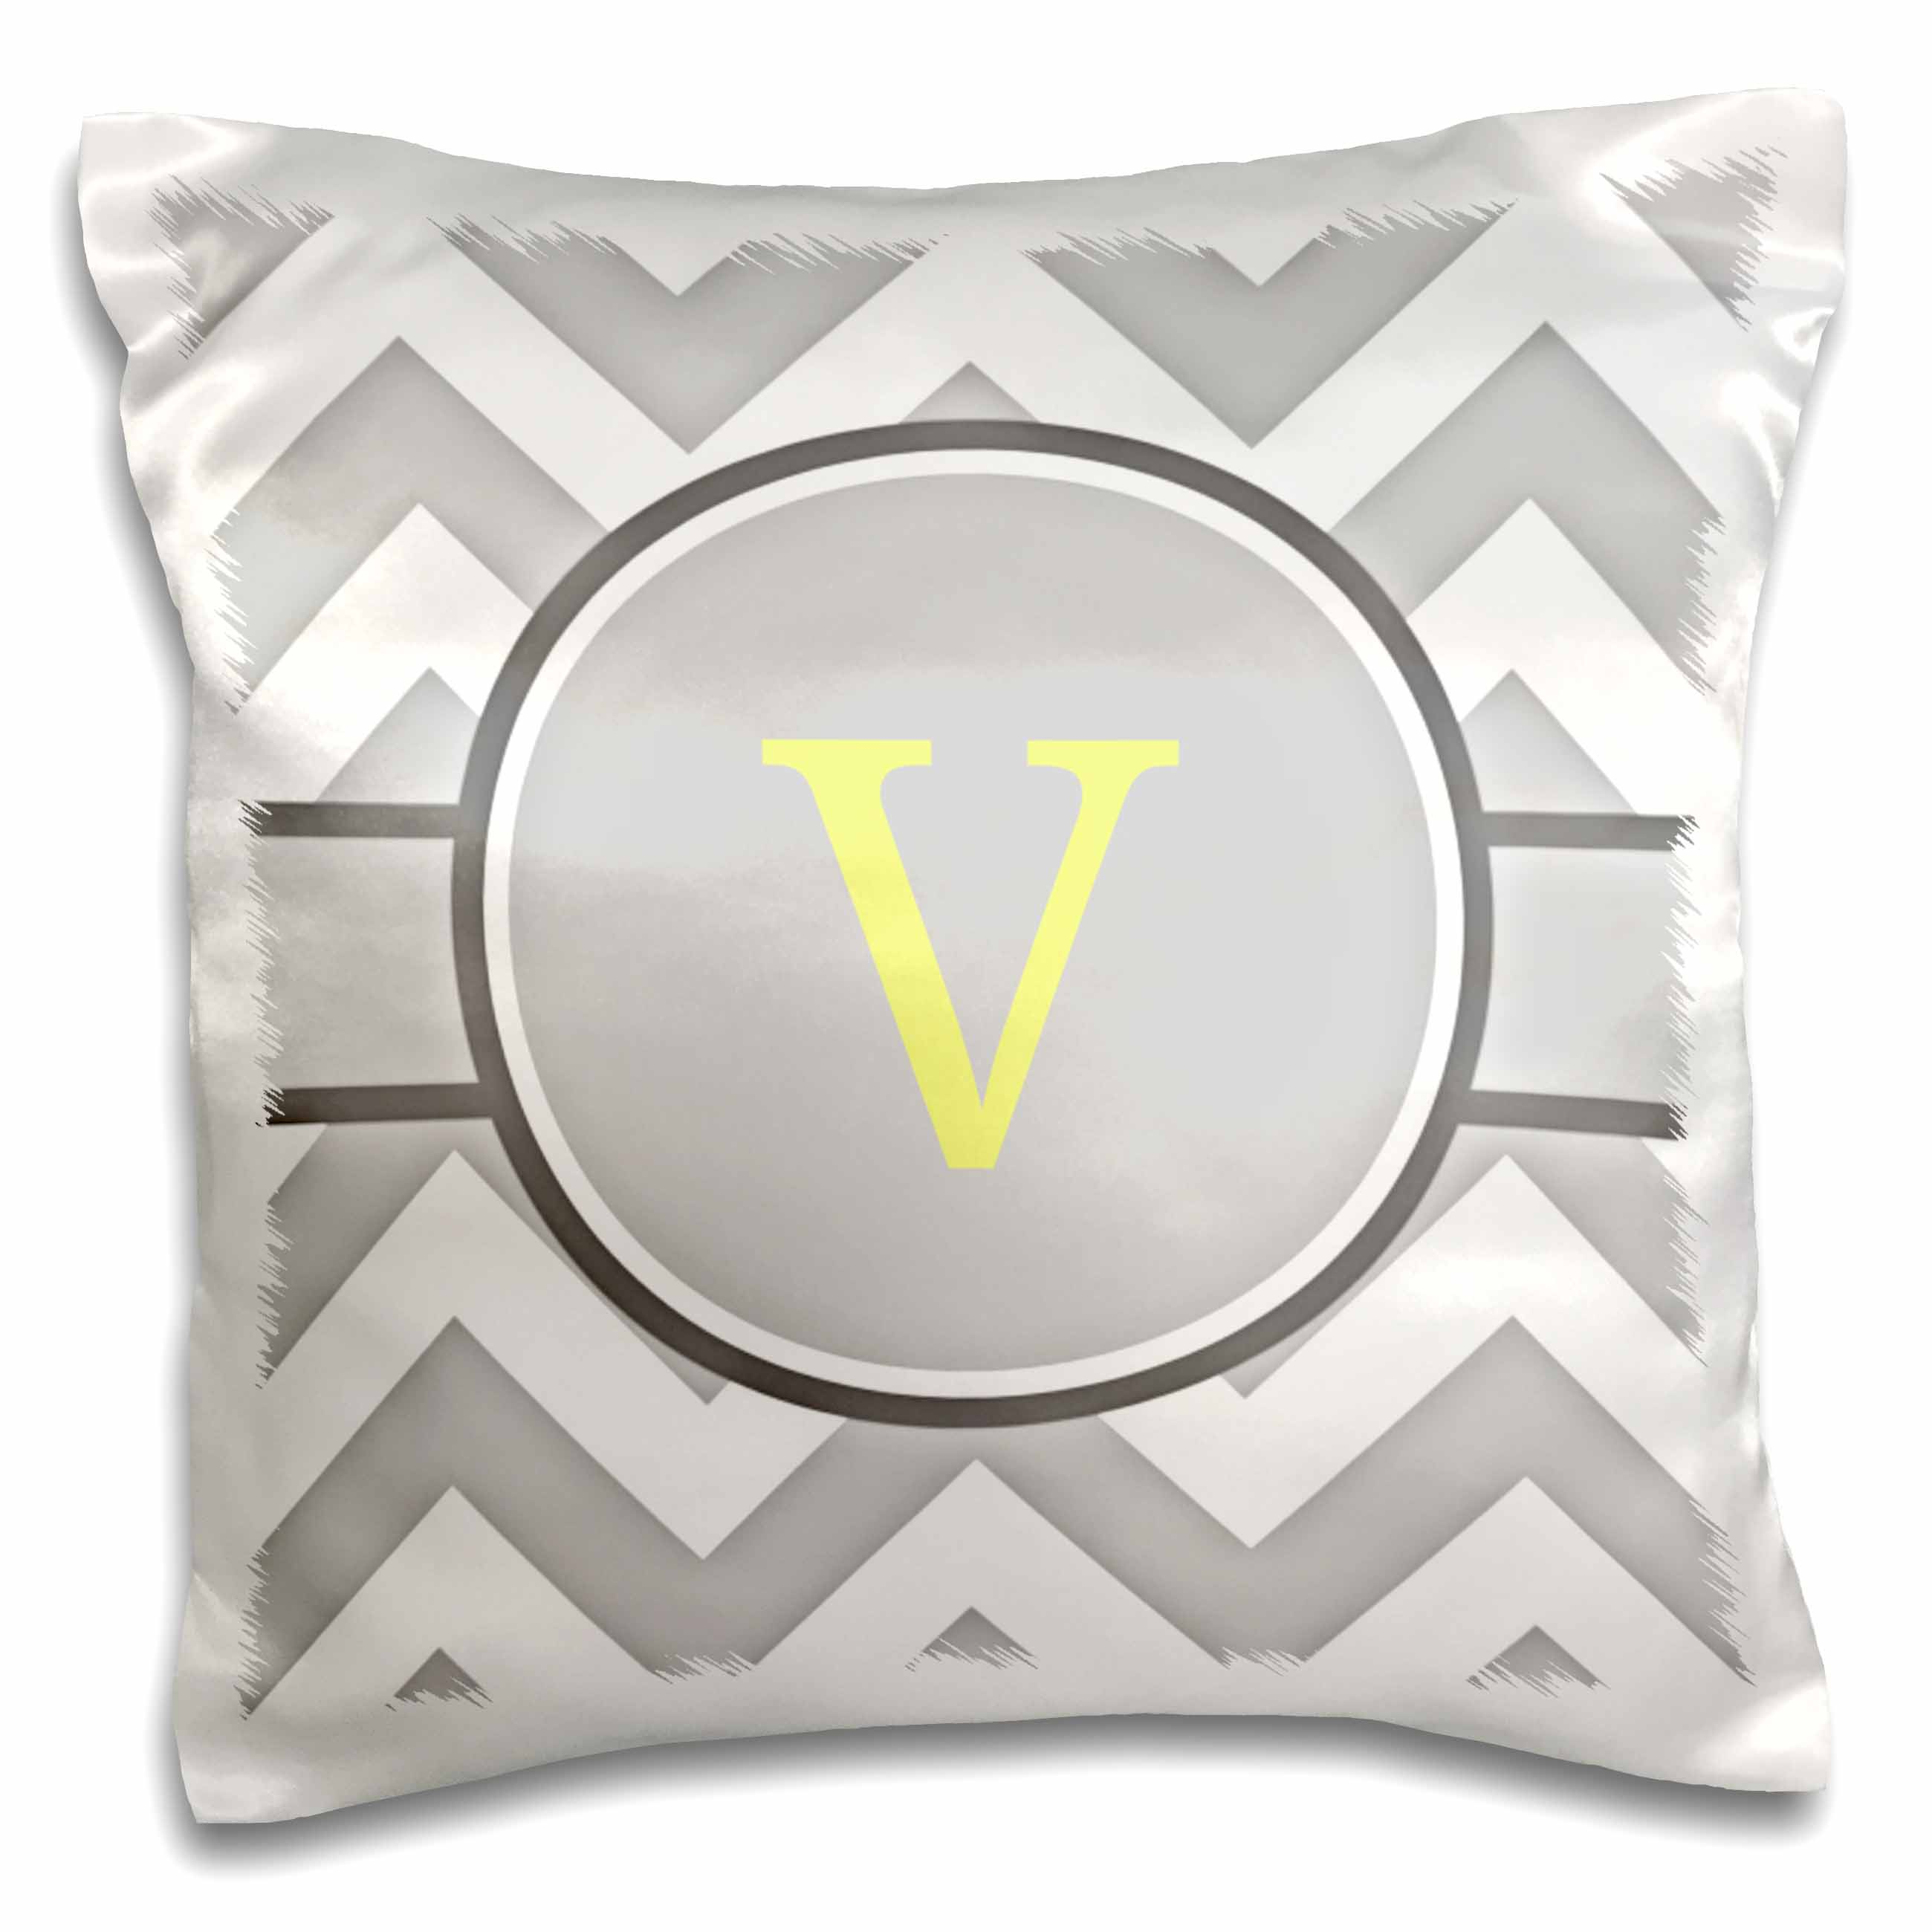 3dRose Grey and white chevron with yellow monogram initial V, Pillow Case, 16 by 16-inch